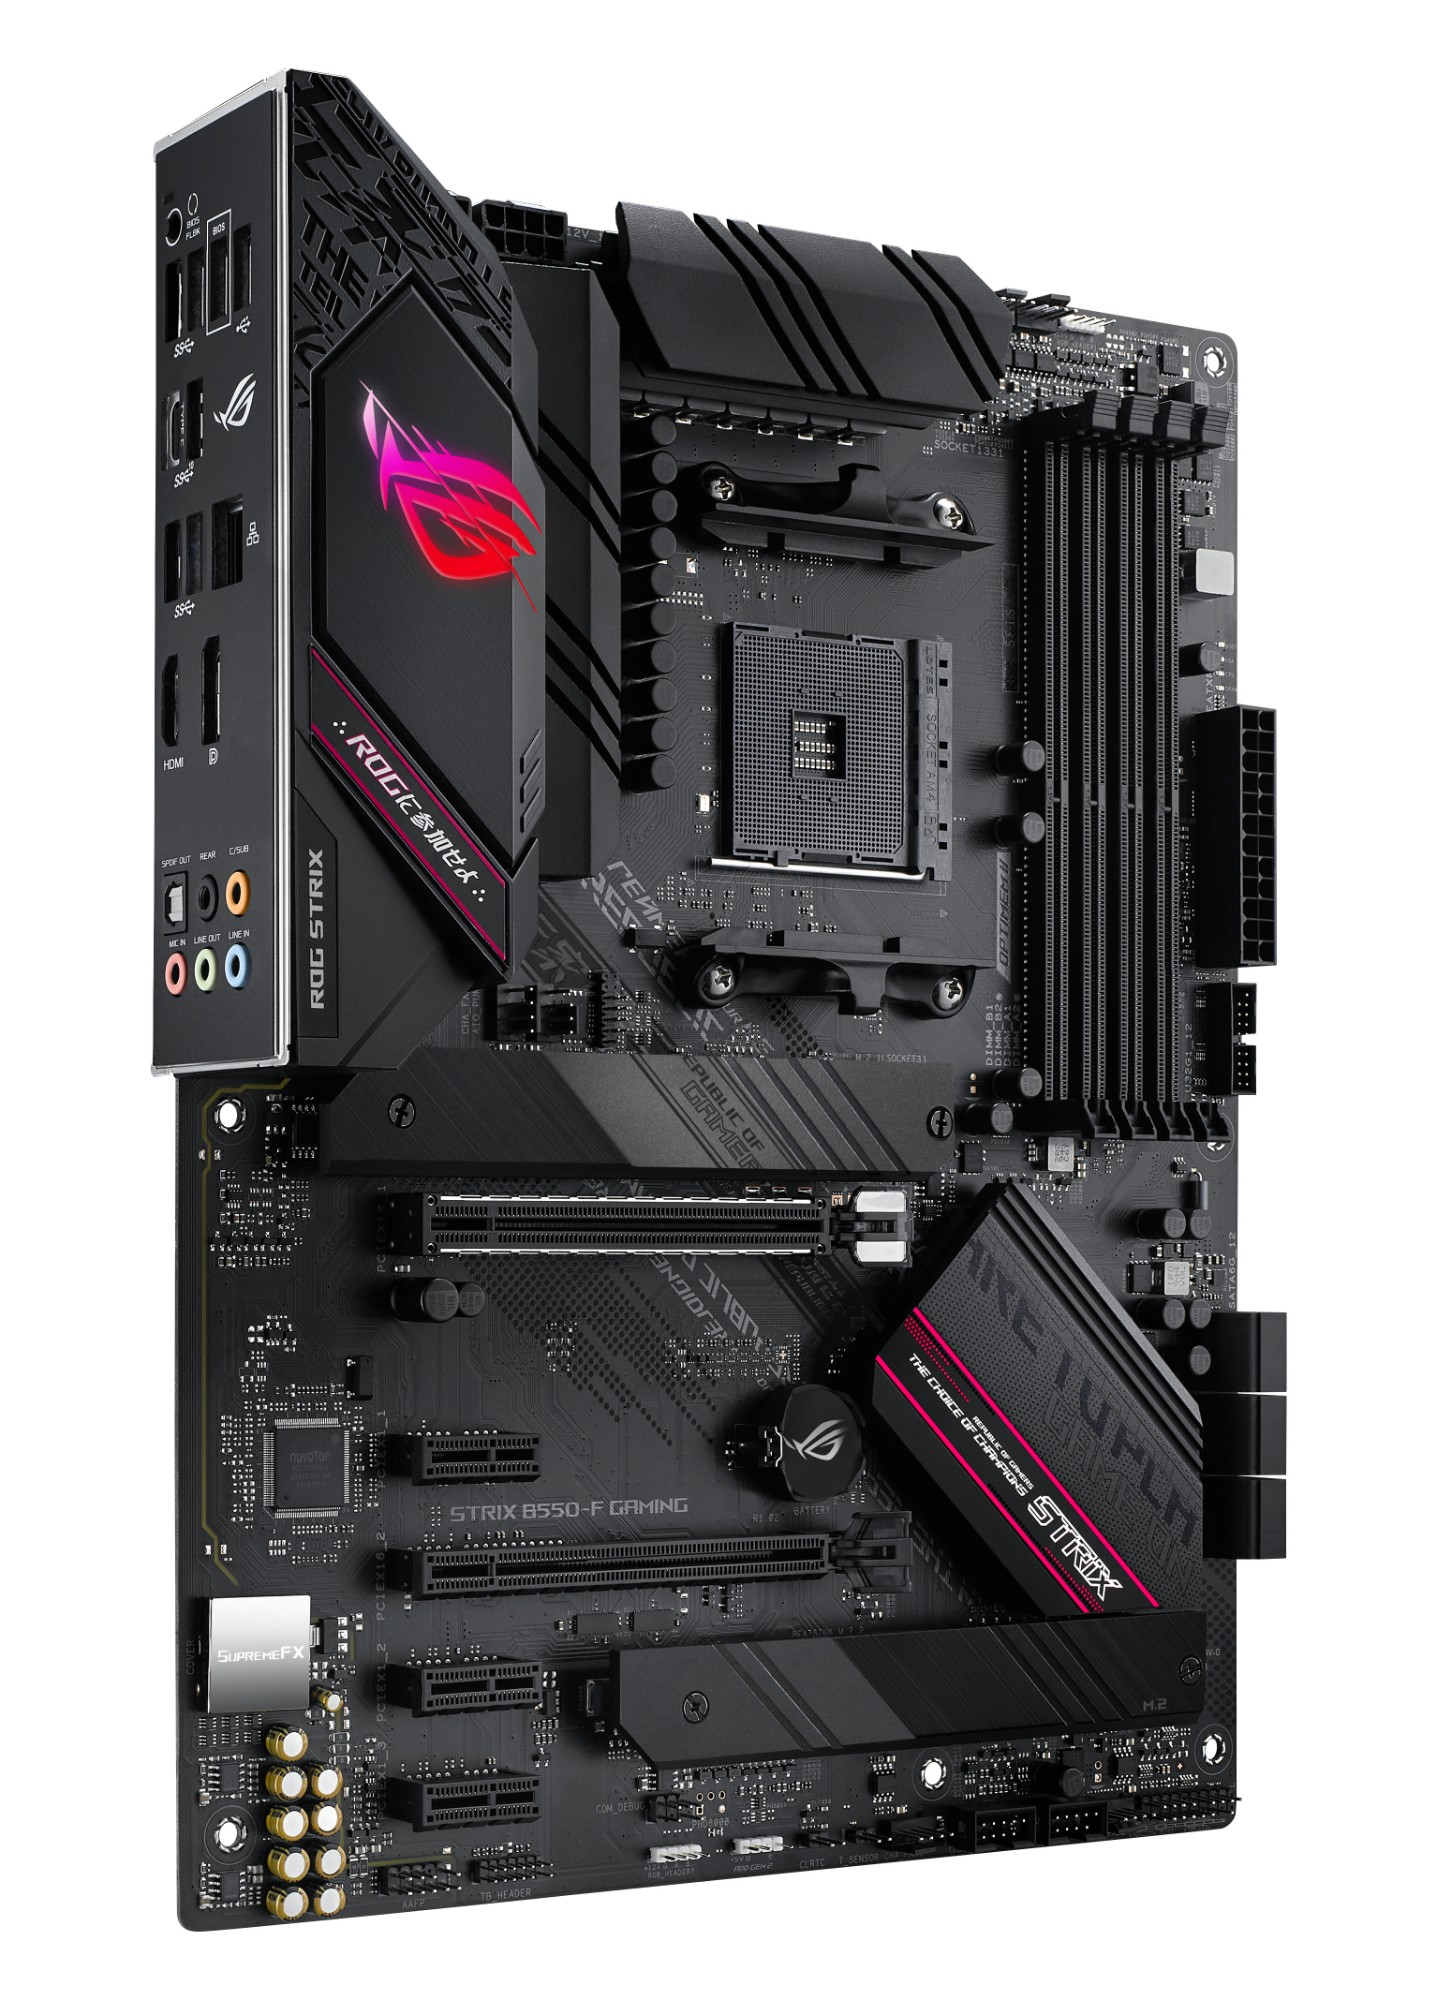 ASUS ROG STRIX B550-F GAMING Socket AM4 ATX AMD B550